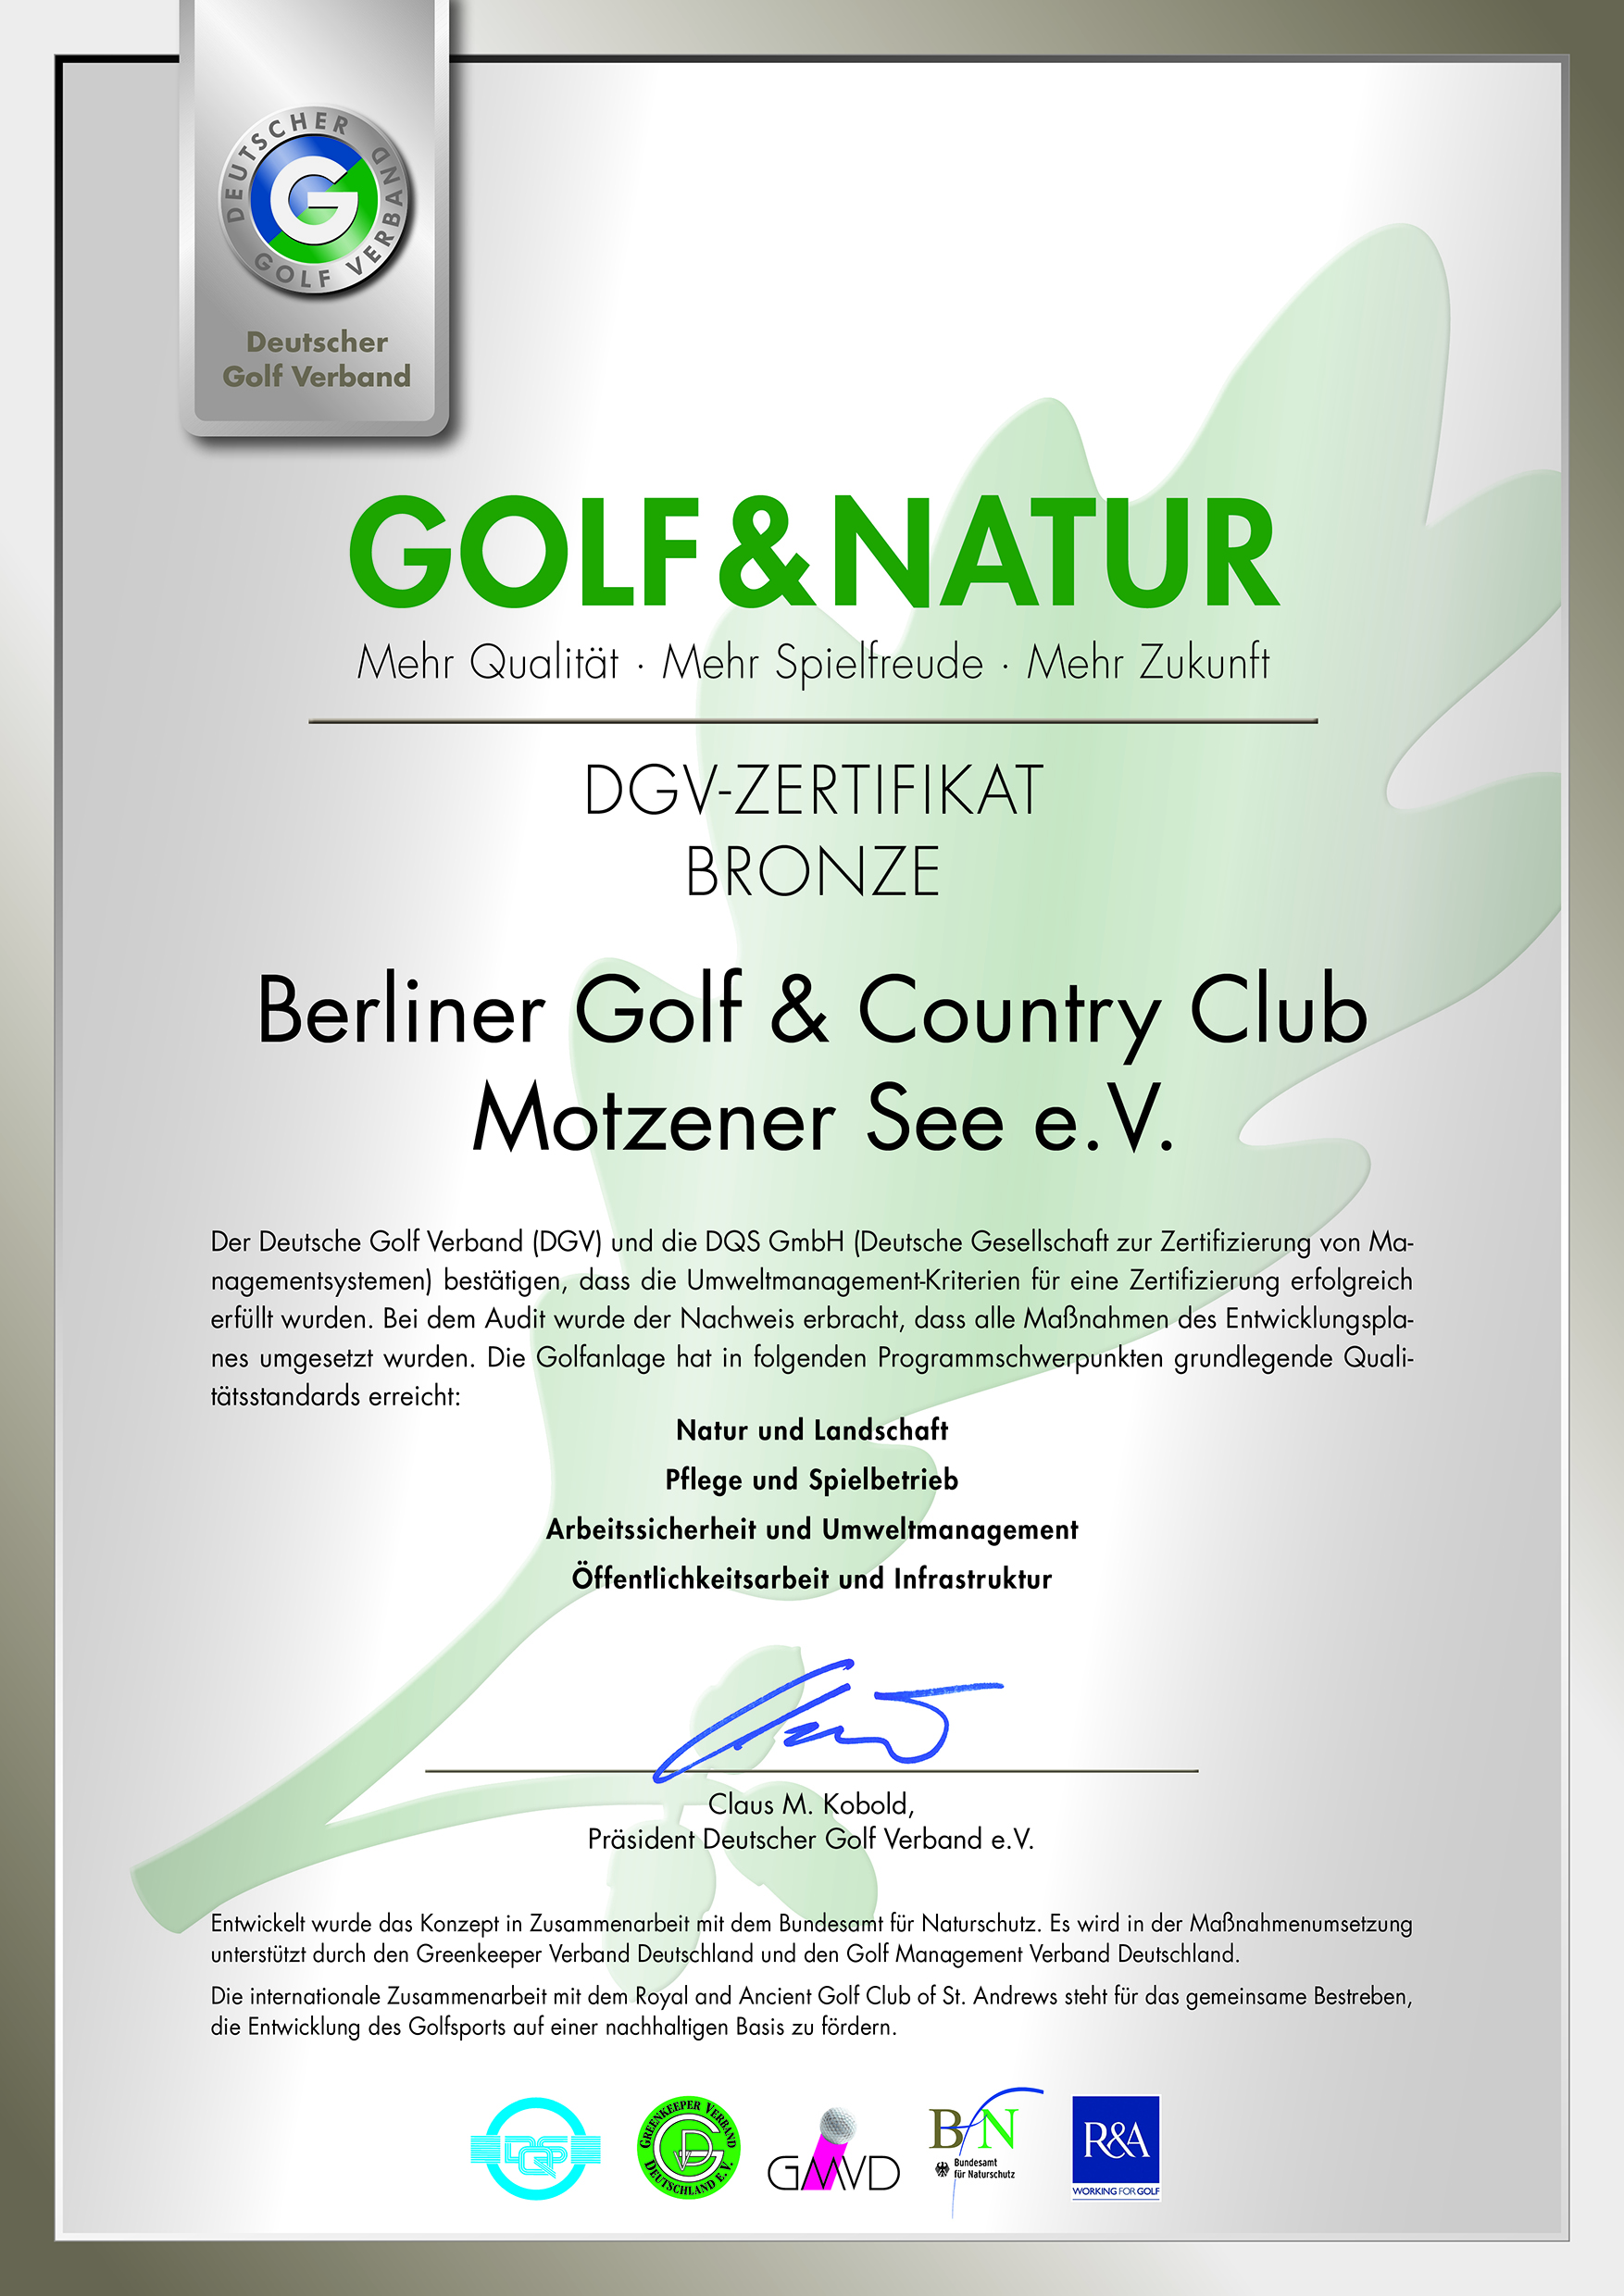 Fein Golf Zertifikat Vorlage Bilder - Entry Level Resume Vorlagen ...